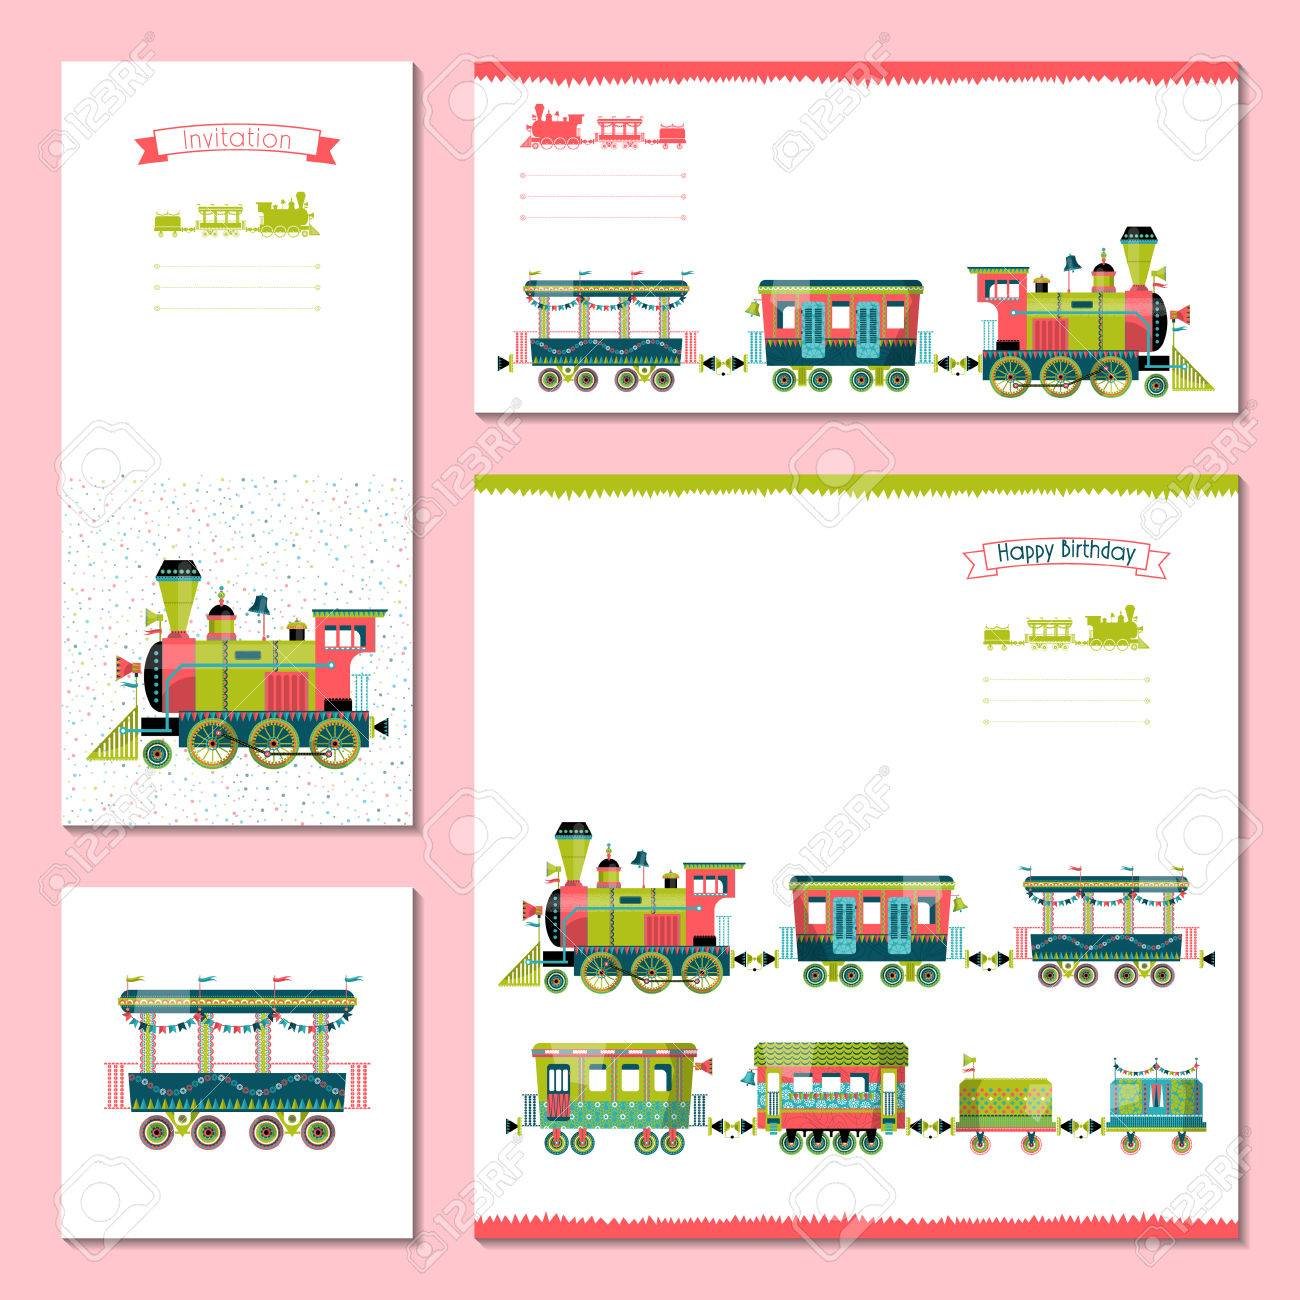 4 universal cards with toy train template birthday anniversary royalty free cliparts vectors and stock illustration image 47493614